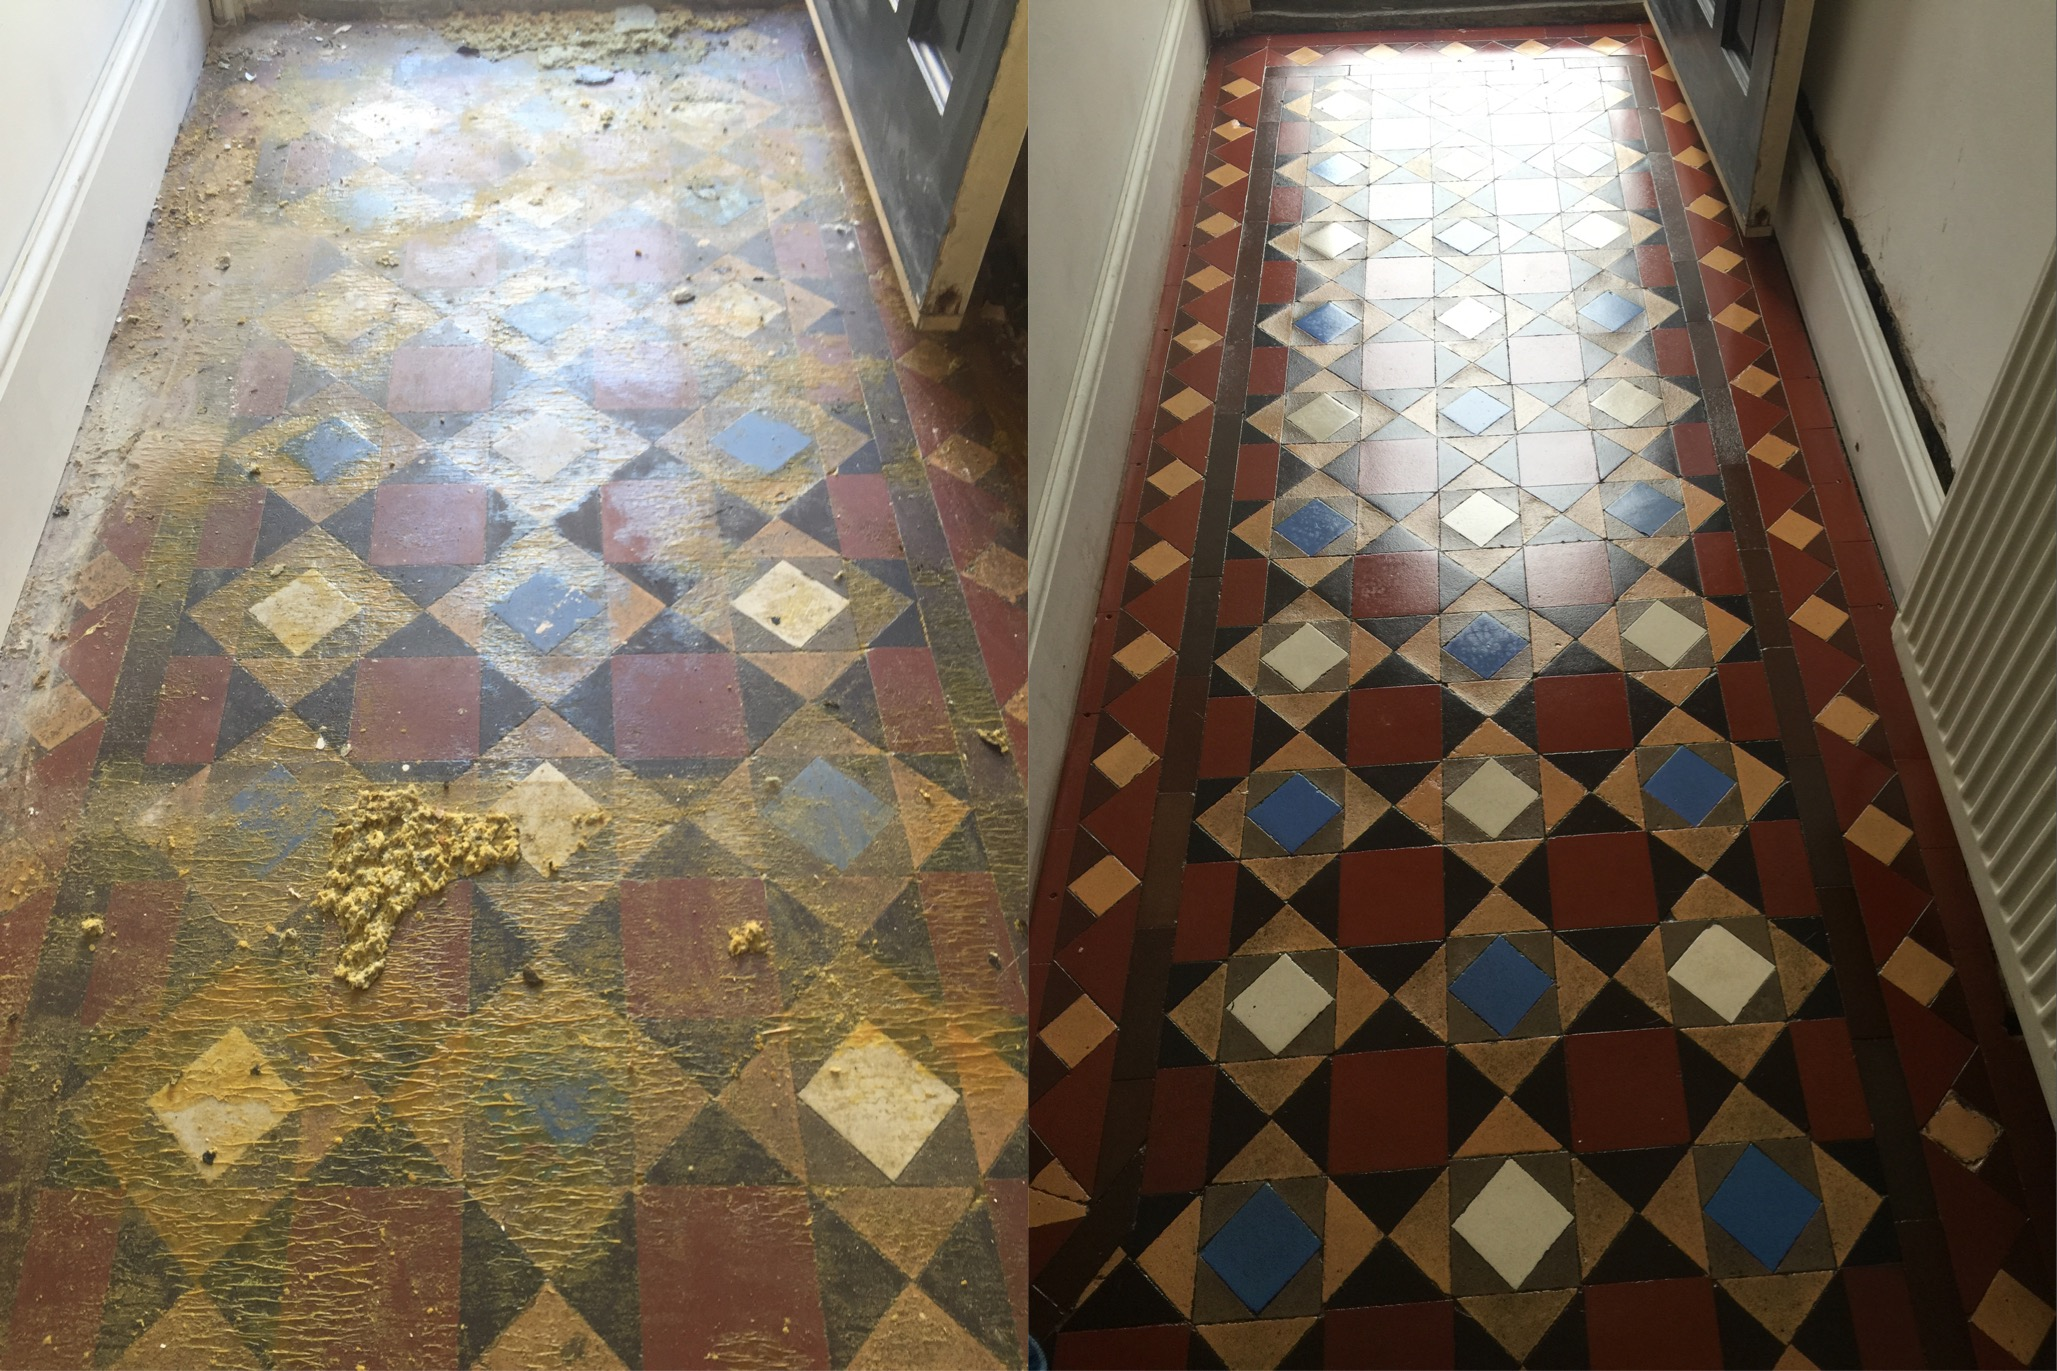 Best victorian floor tiles restoration ideas flooring area victorian tiles cleaning and maintenance advice for victorian victorian geometric tile restoration the floor restoration company doublecrazyfo Gallery